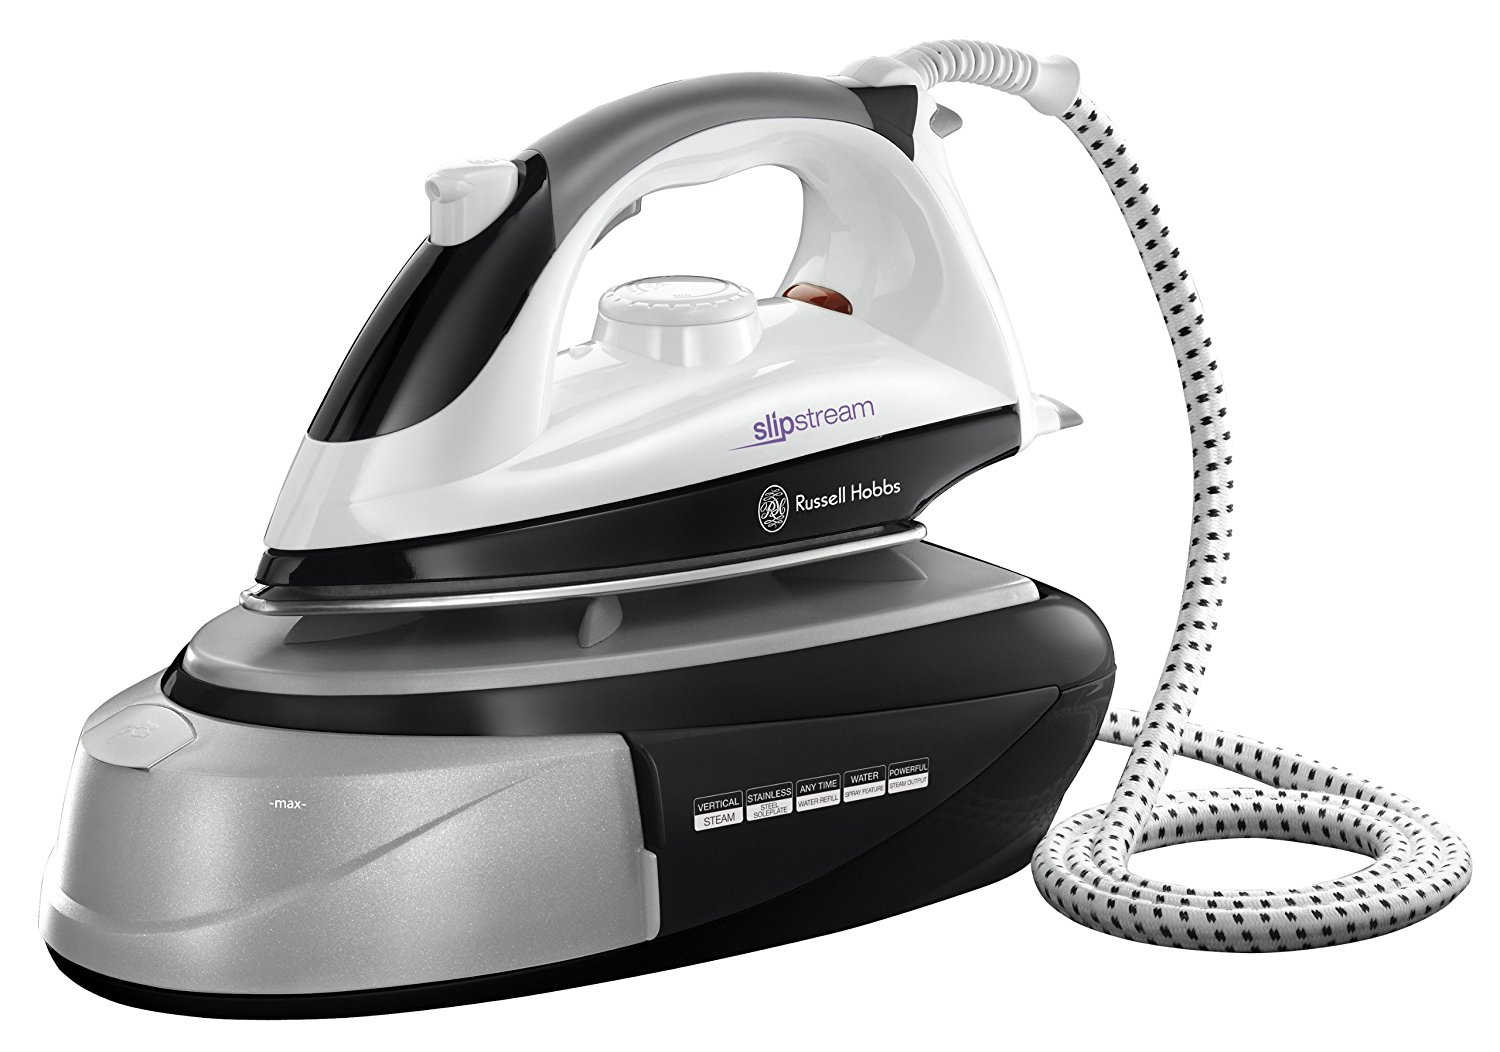 1800 Electric Iron ~ Russell hobbs slipstream steam generator iron w